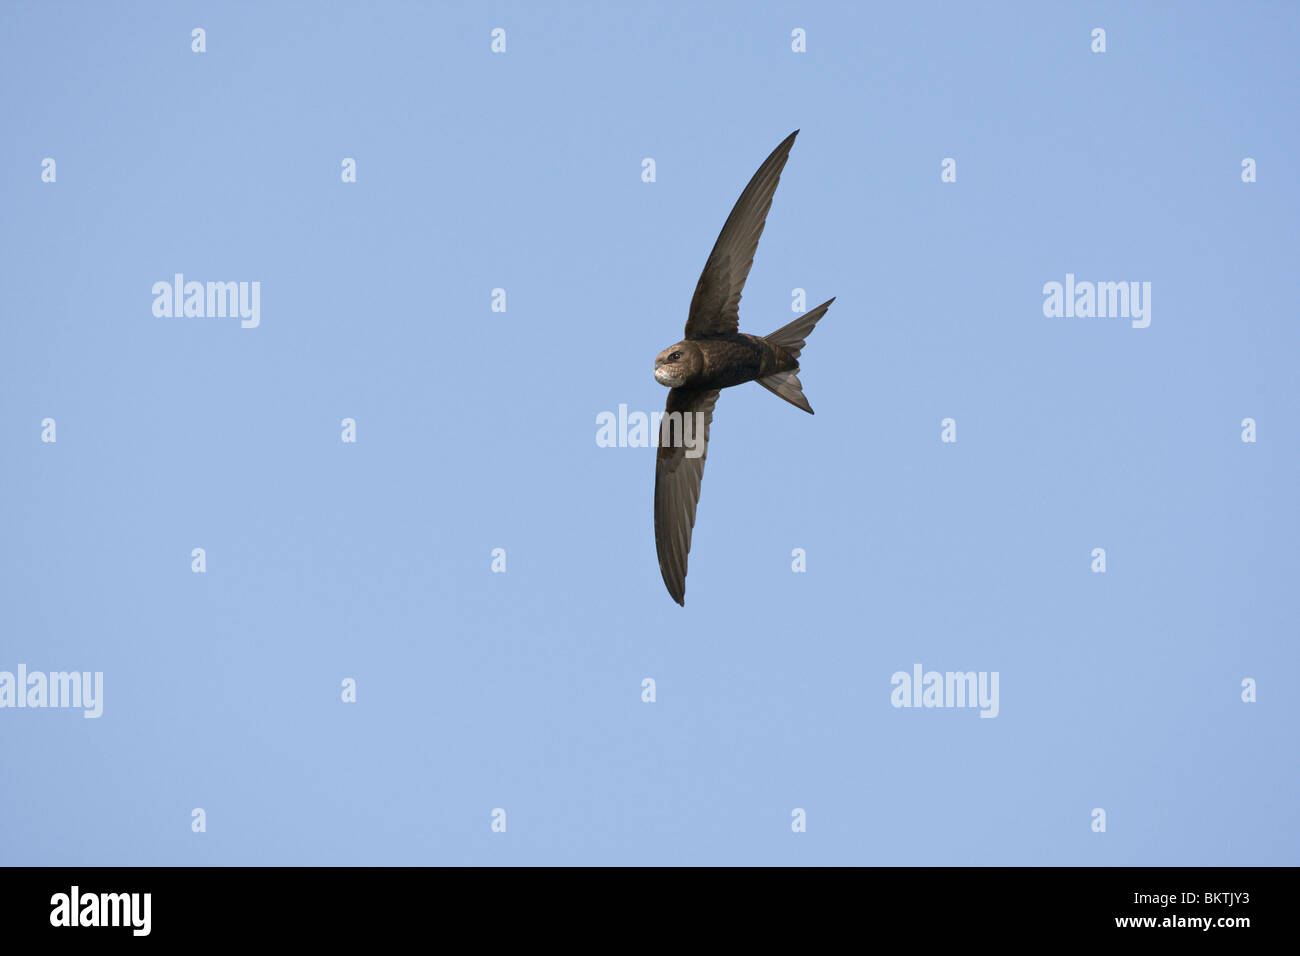 Gierzwaluw met volle krop vliegend en fouragerend. Common Swift with full goitre flying and foraging Stock Photo